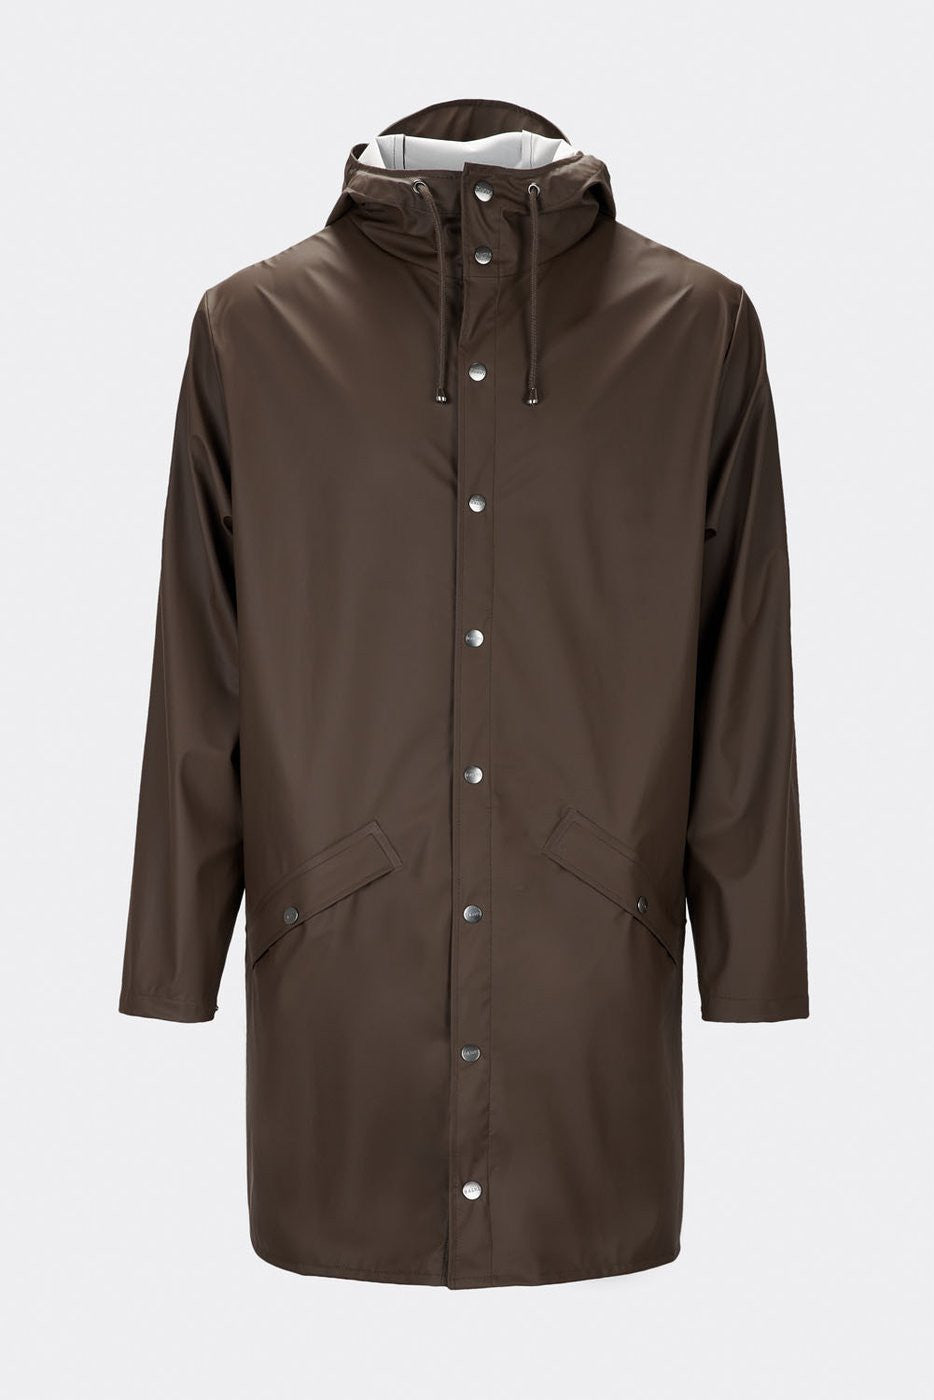 Long Jacket - Brown (w)